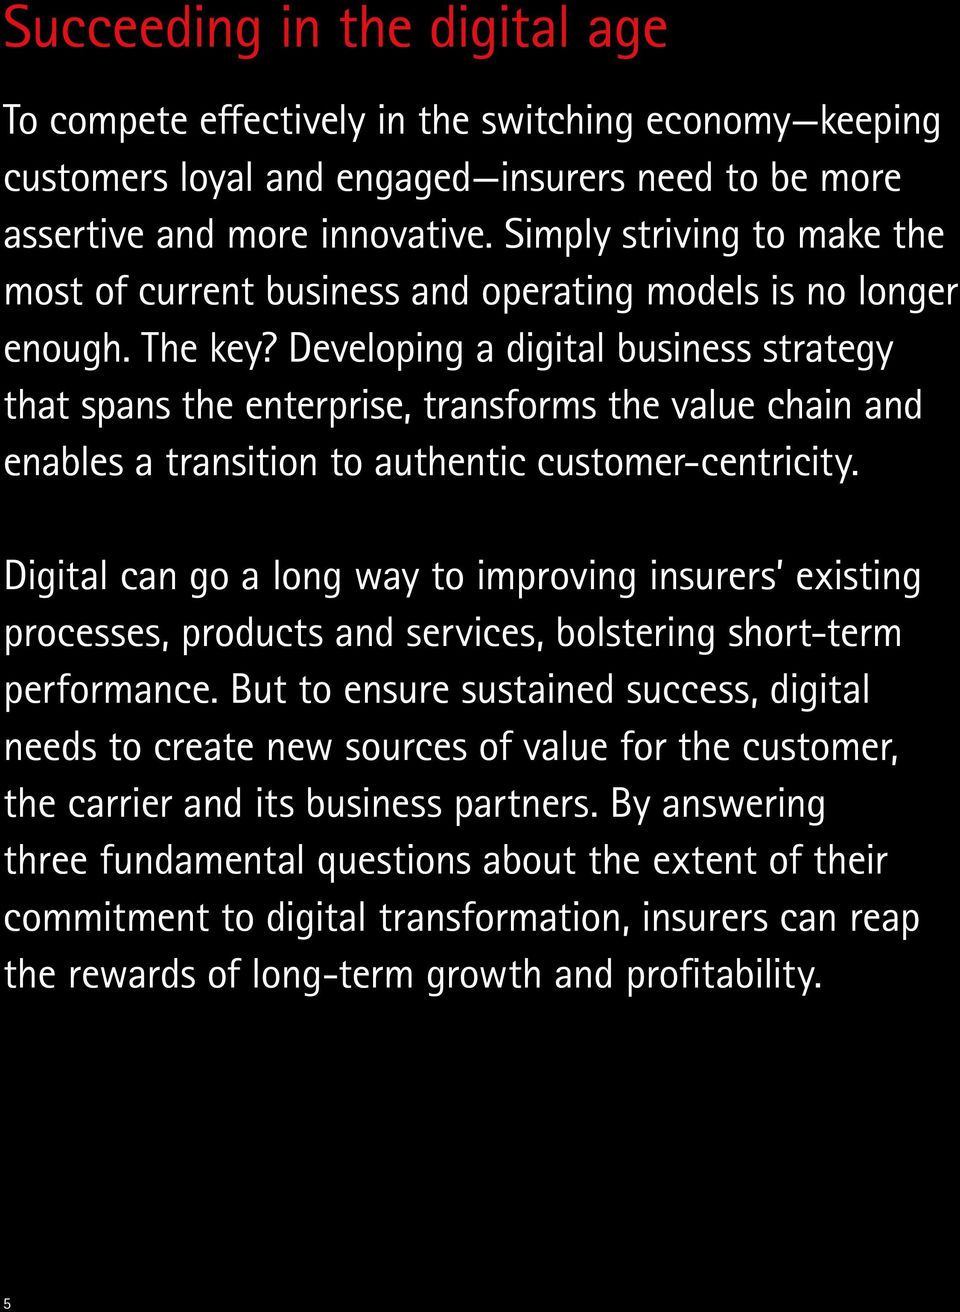 Developing a digital business strategy that spans the enterprise, transforms the value chain and enables a transition to authentic customer-centricity.